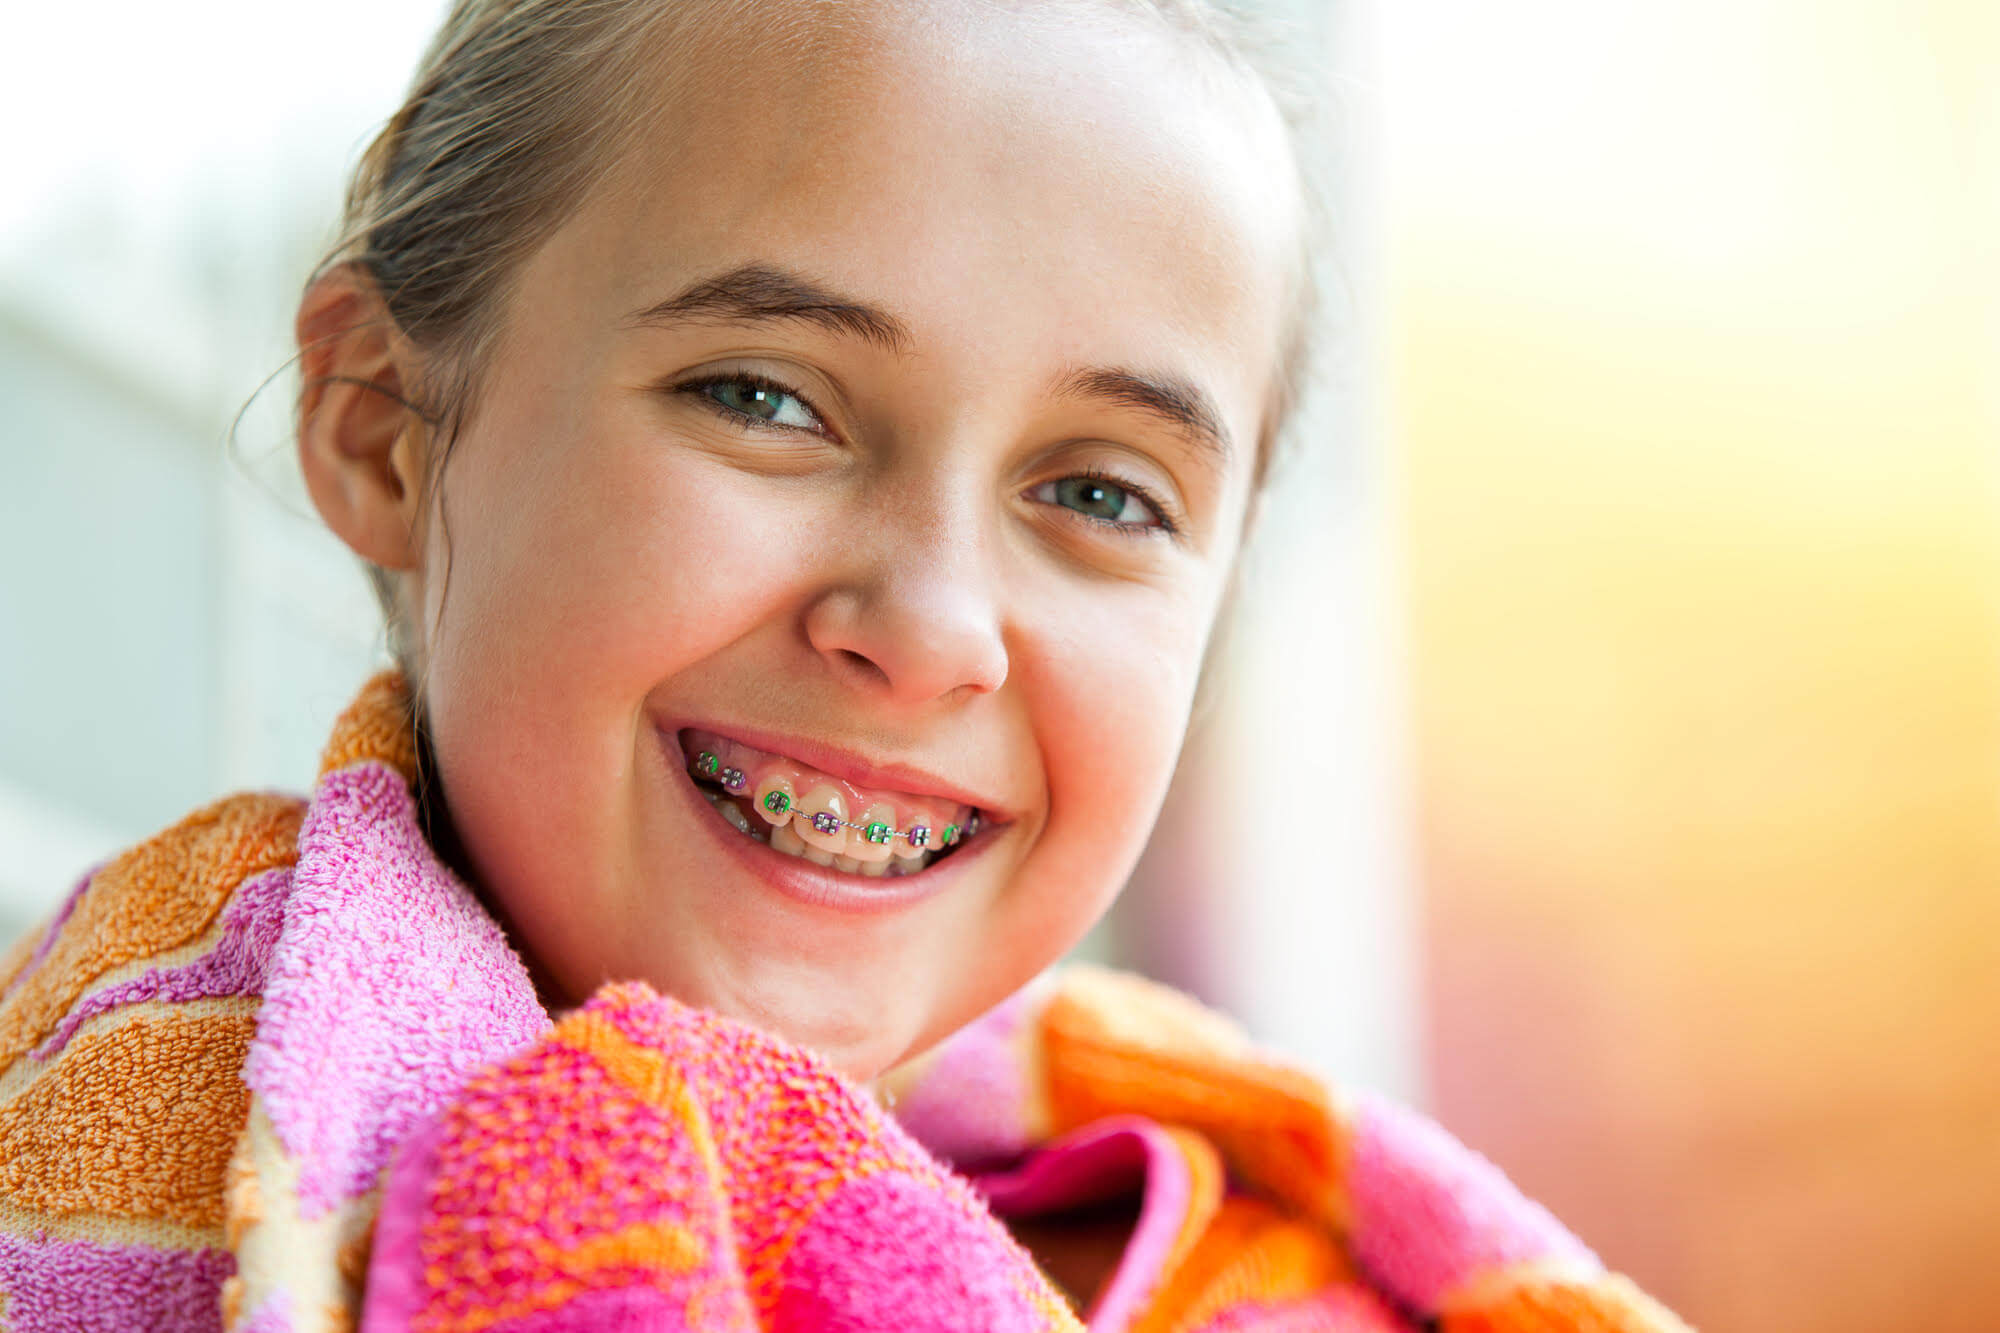 cute girl smiling with braces while wrapped up in a towel after swimming